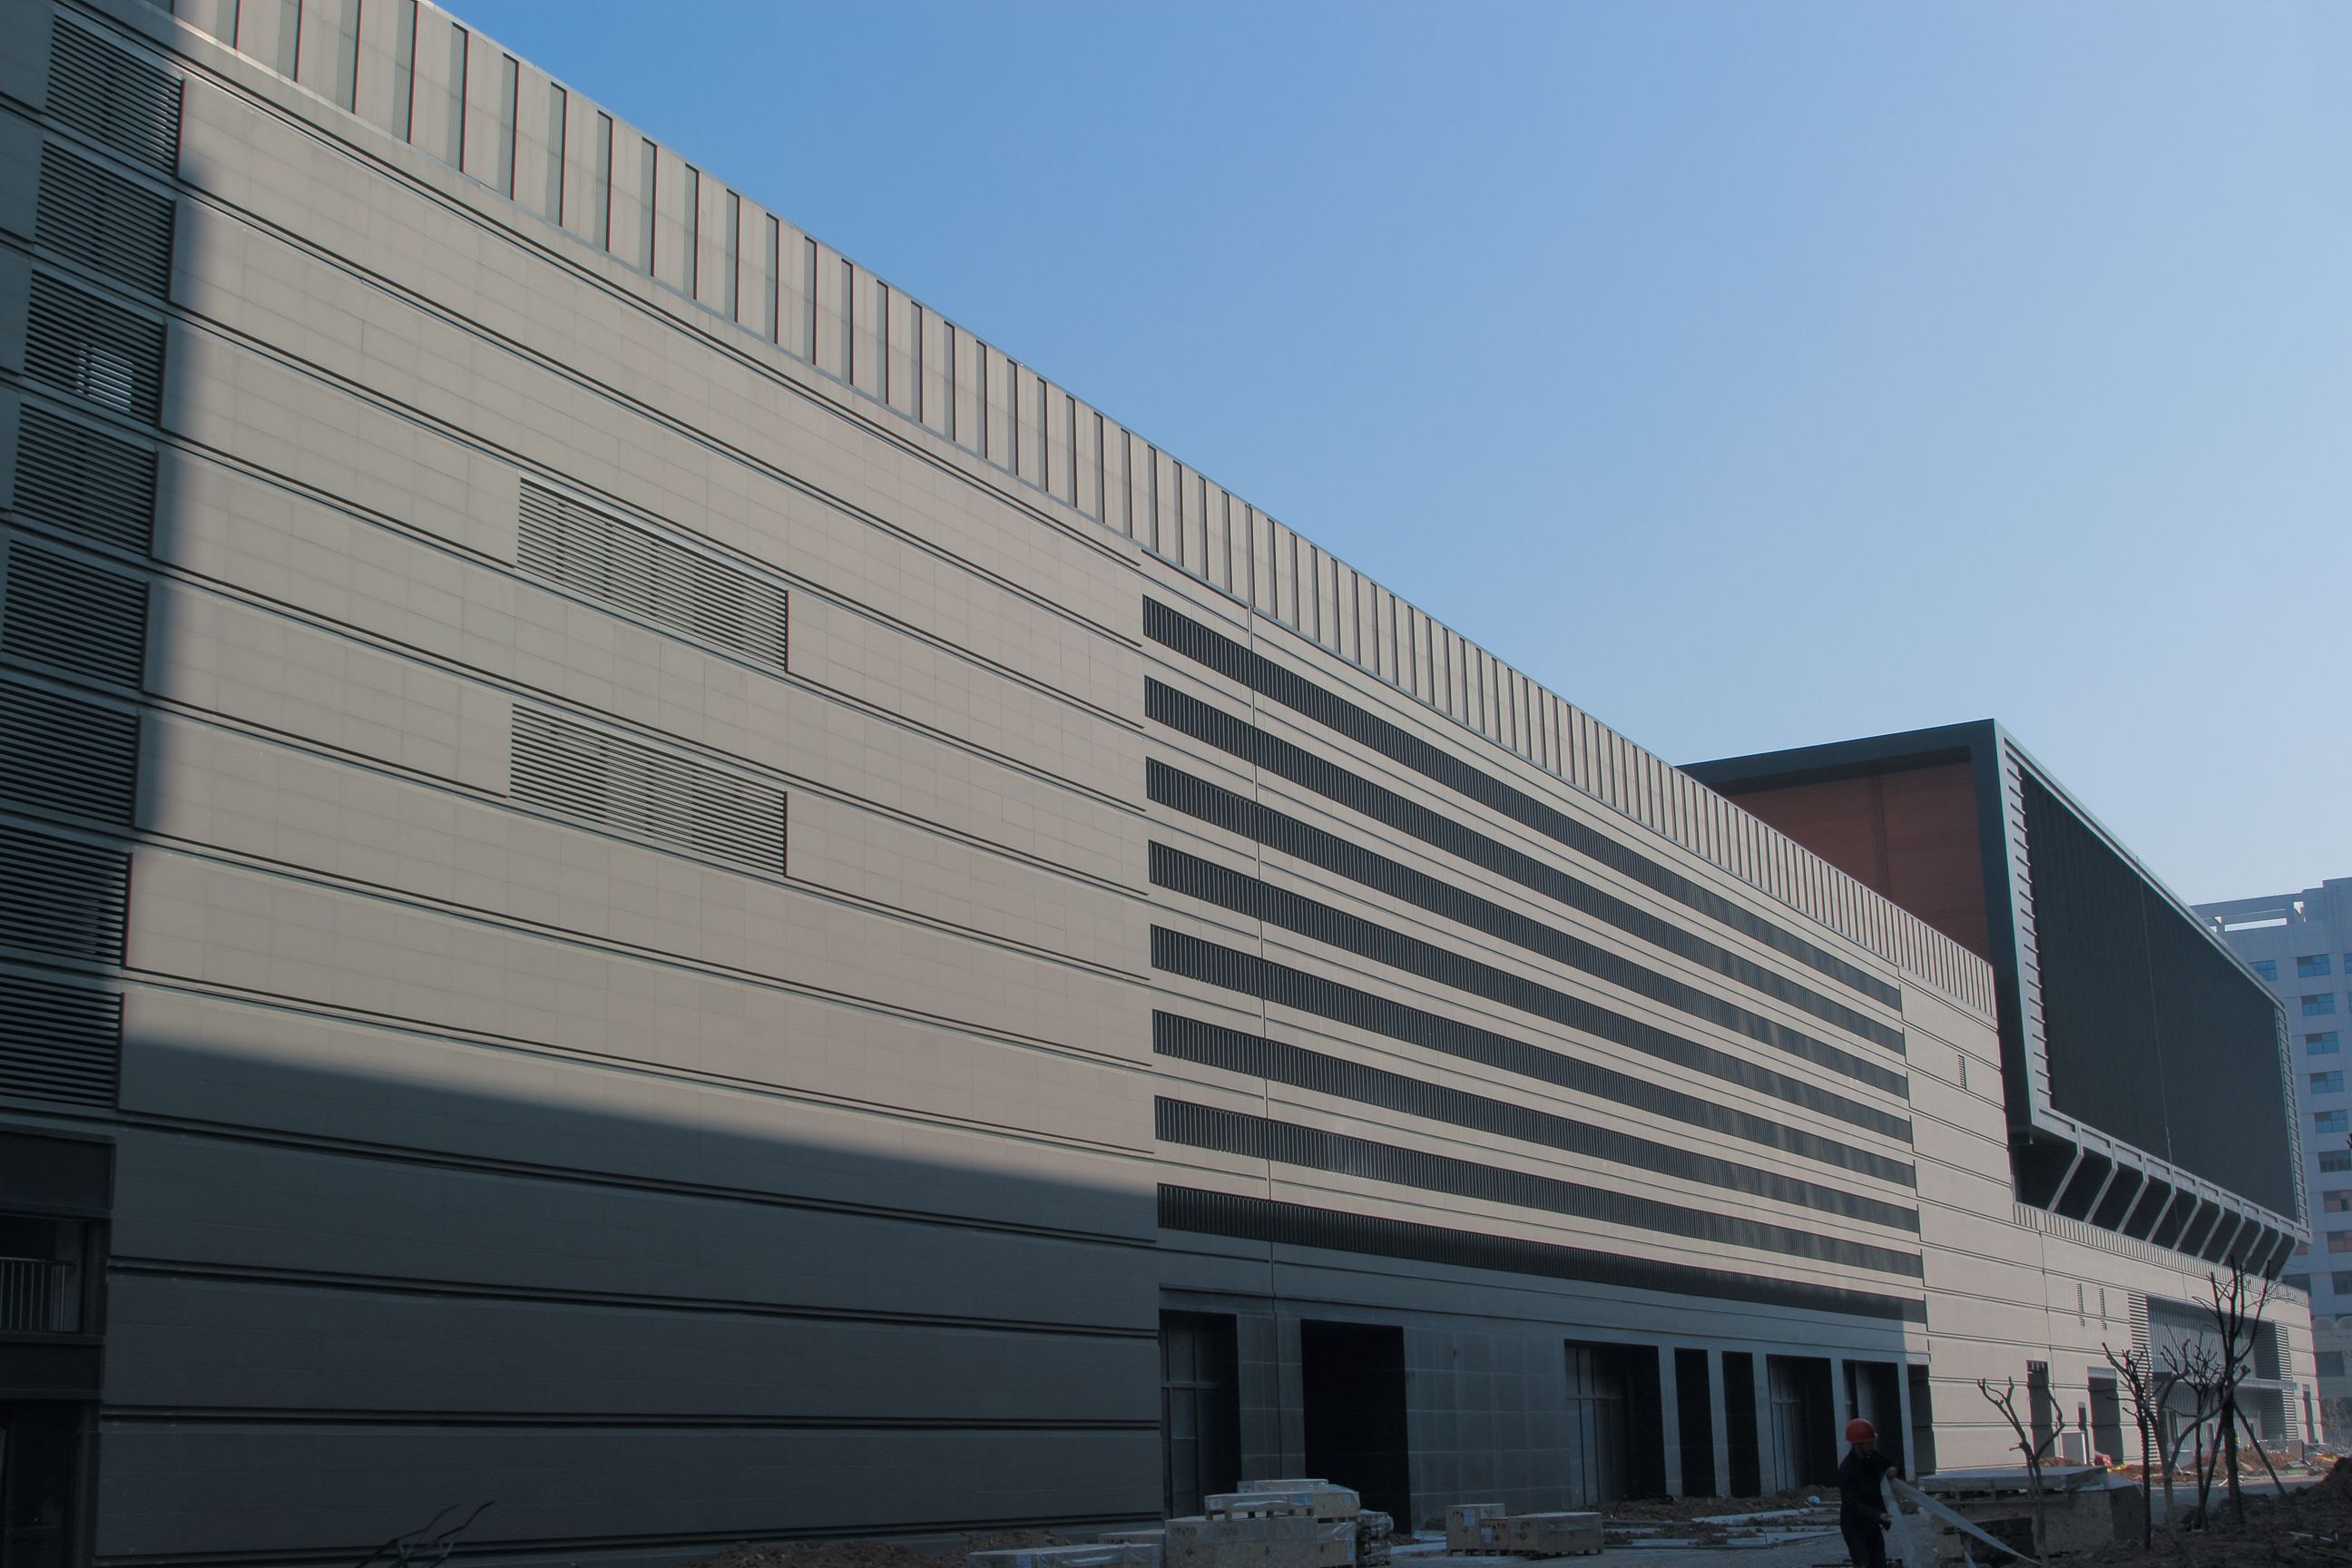 National fitness center, Zhoushan (0)